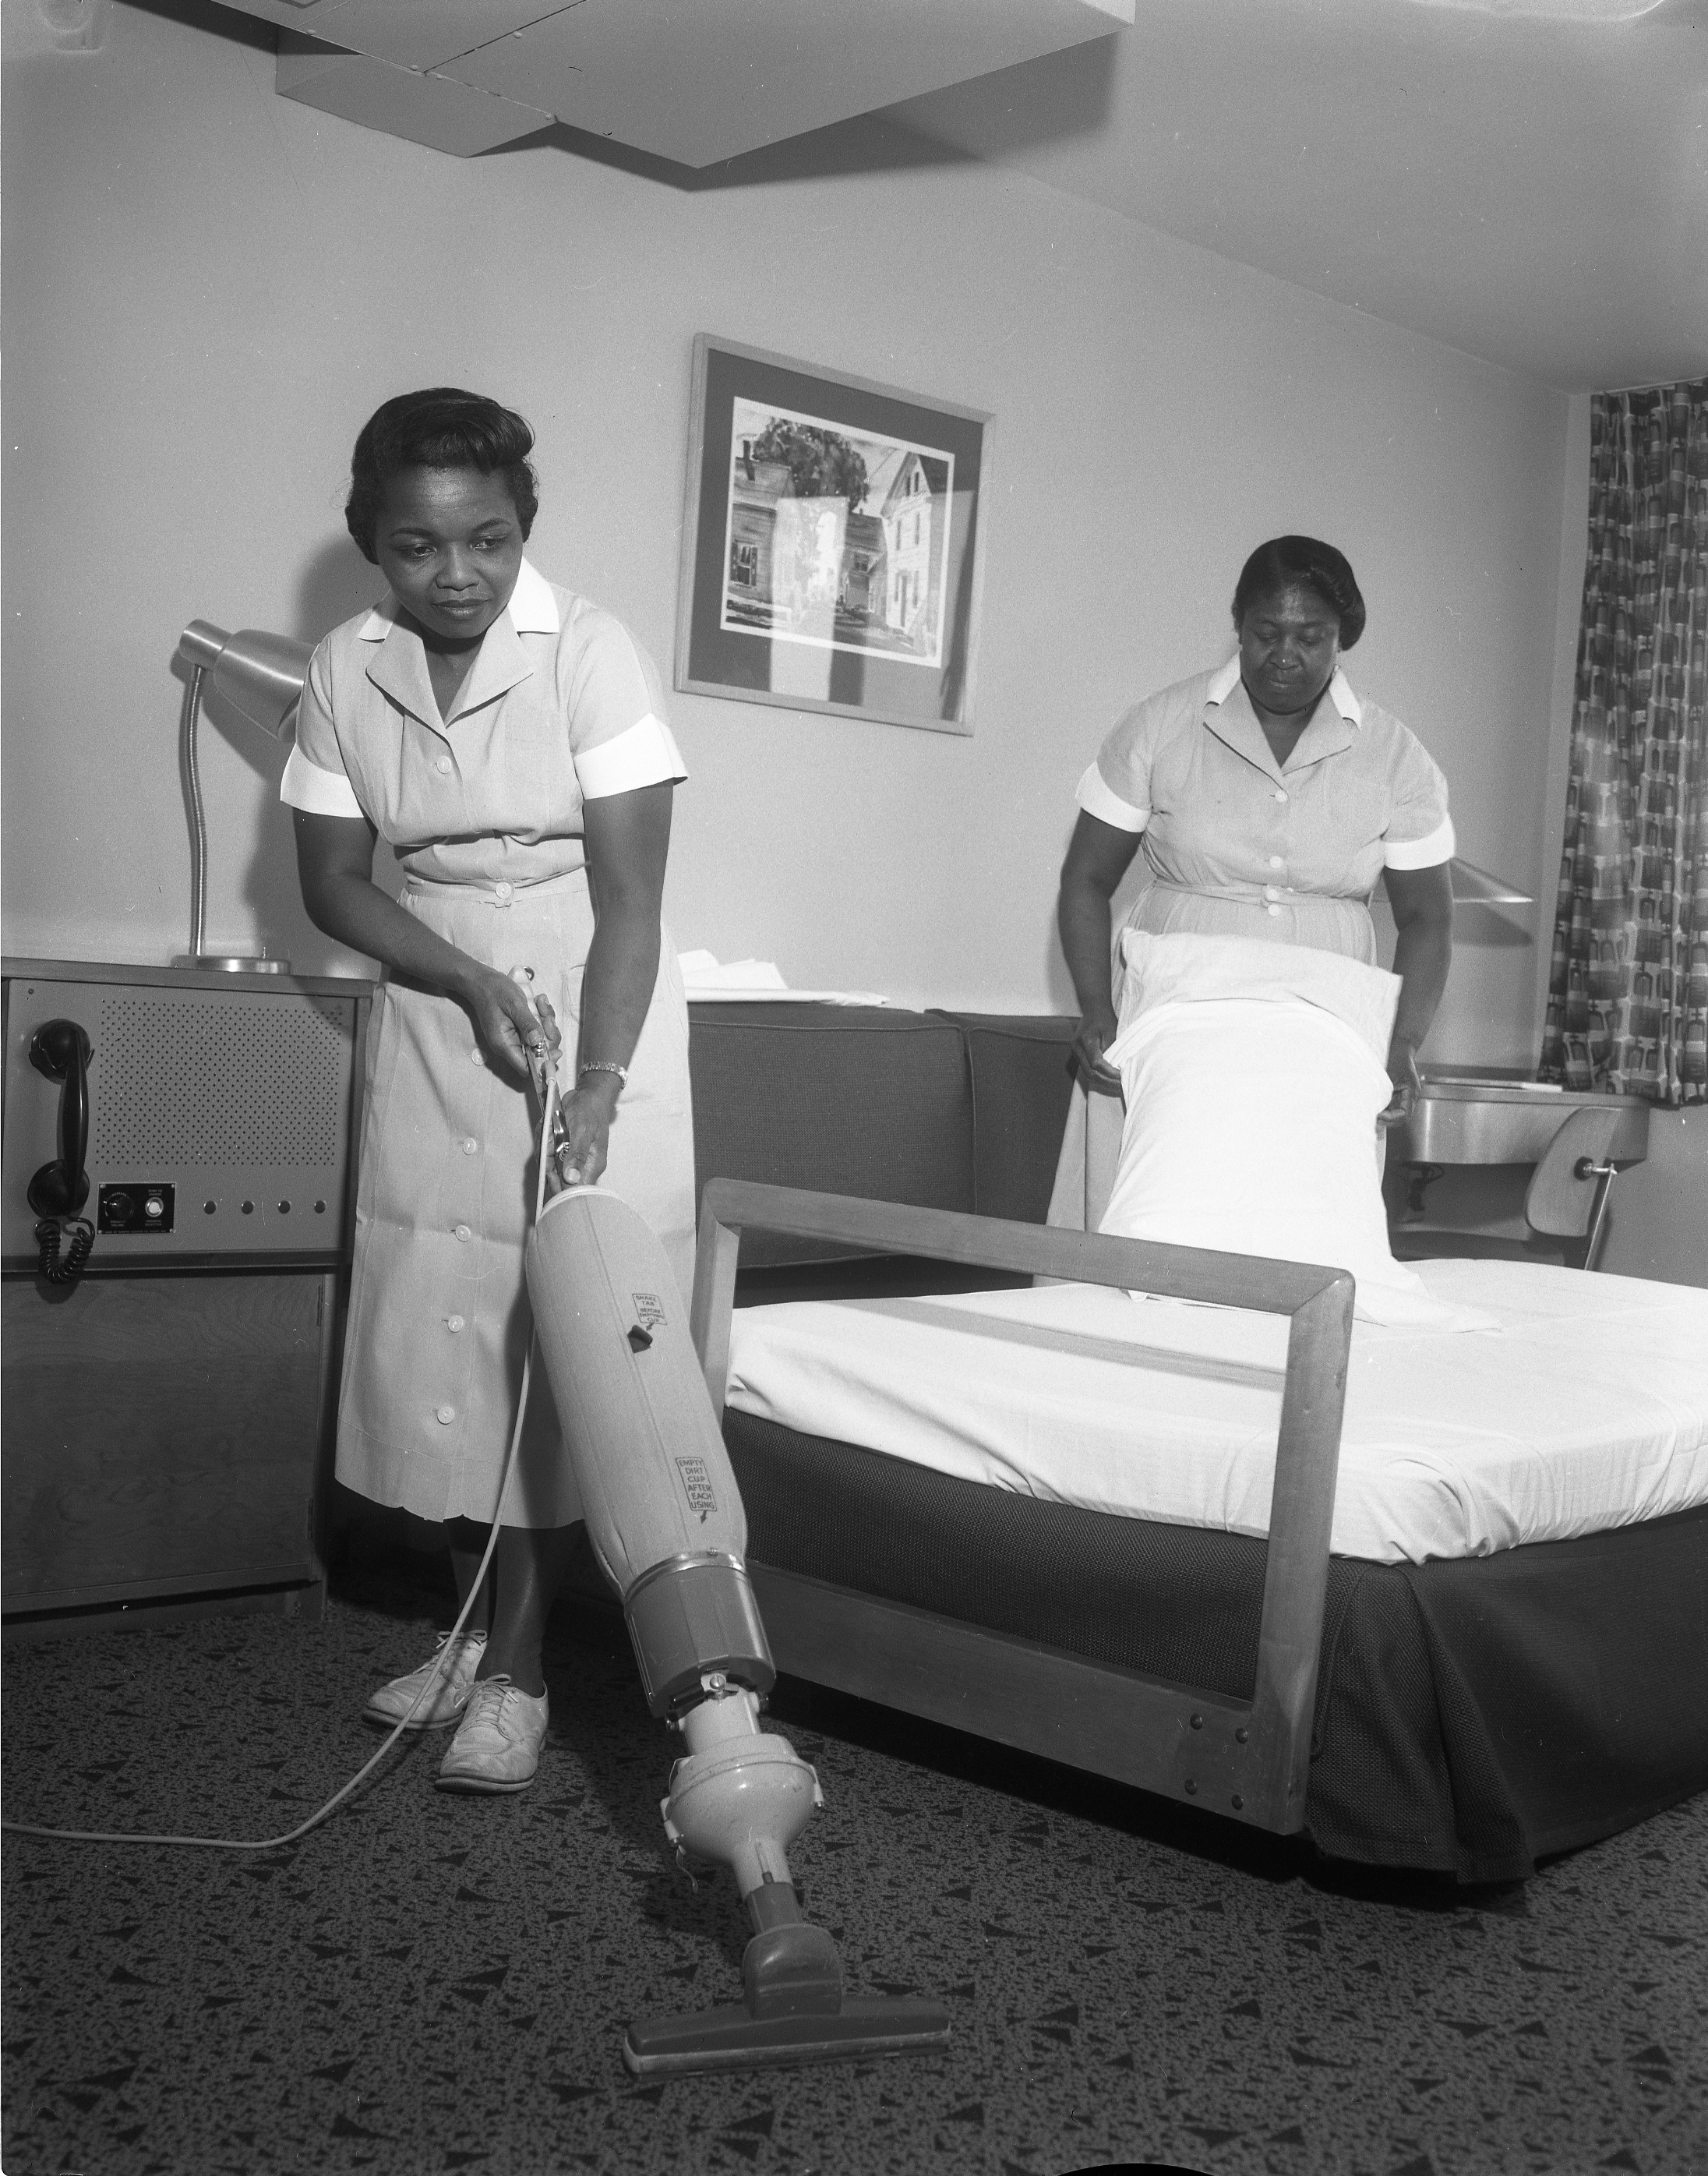 Housekeepers at the Kellogg Center, 1959